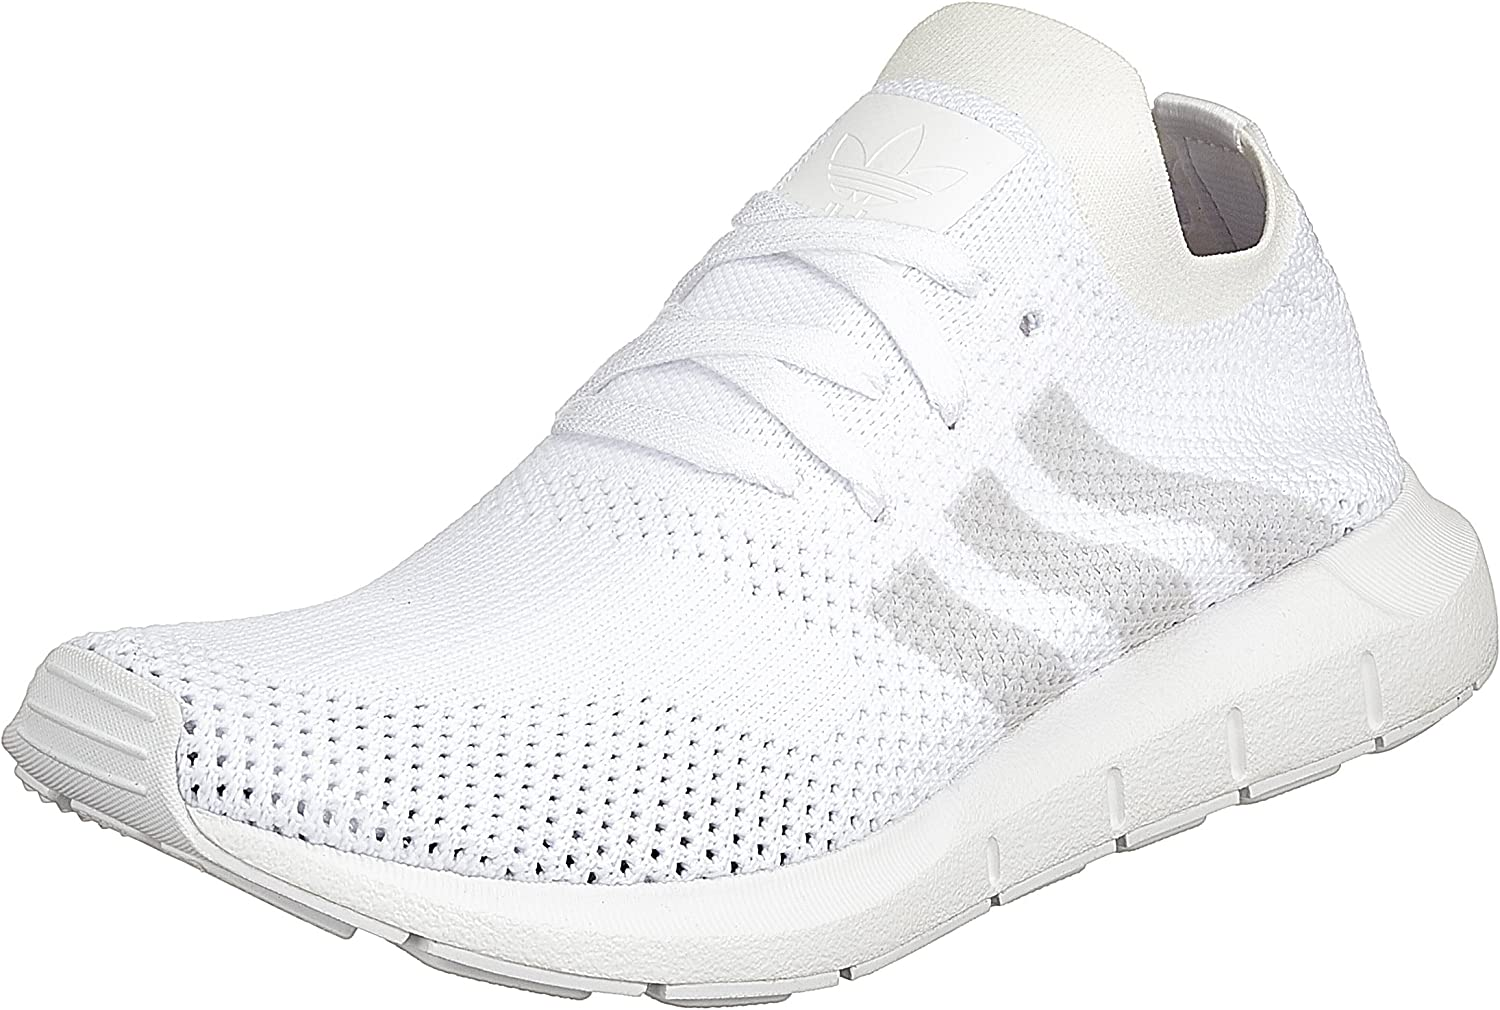 Adidas Boys' Swift Run Pk Fitness shoes